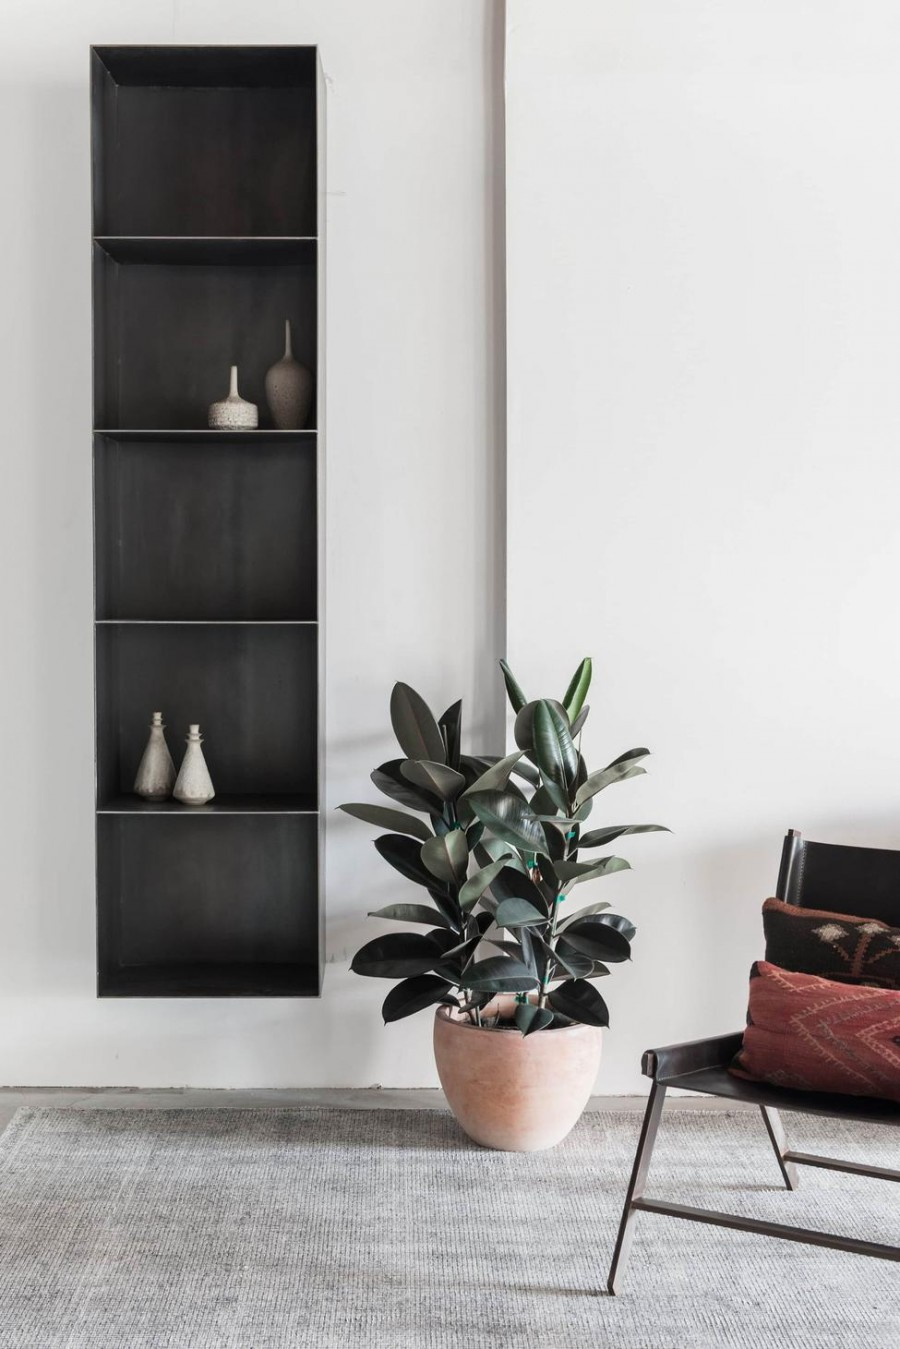 Croft House Is A Los Angeles Based Manufacturer And Retailer Of Handmade  Home Furniture And Commercial Fixtures. Take A Look At These Wonderful  Images, ...